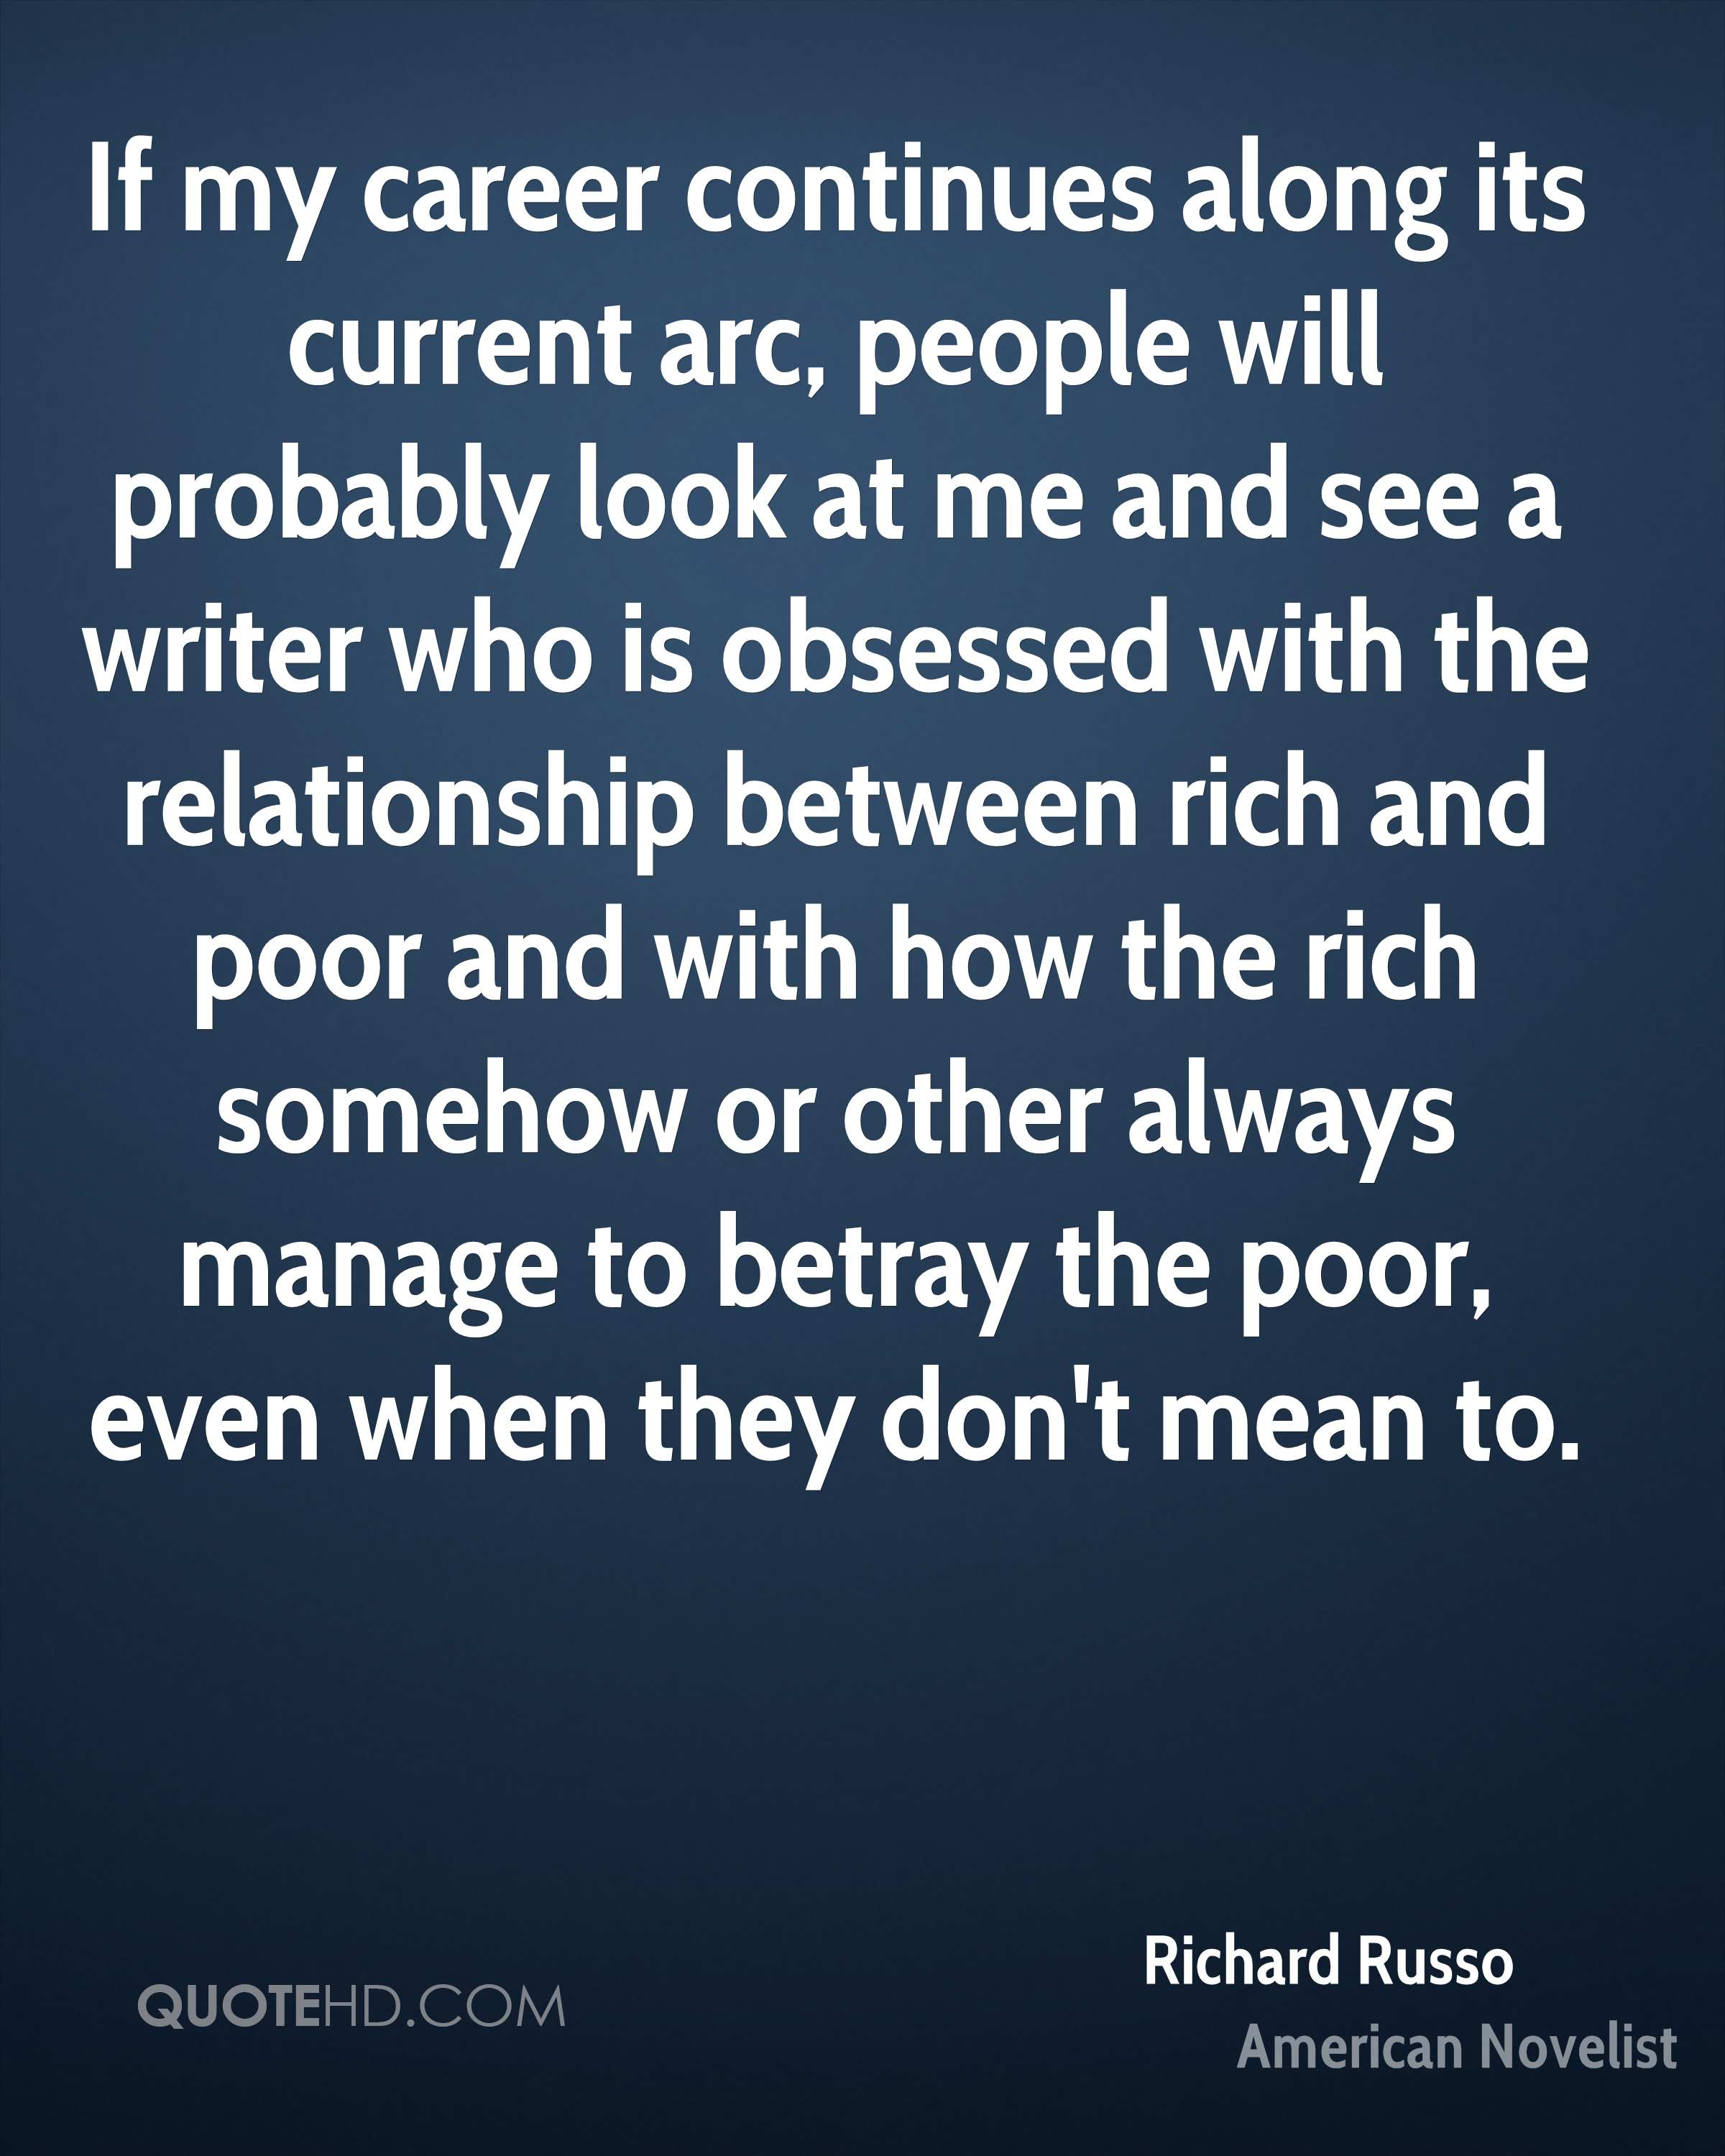 If my career continues along its current arc, people will probably look at me and see a writer who is obsessed with the relationship between rich and poor and with how the rich somehow or other always manage to betray the poor, even when they don't mean to.